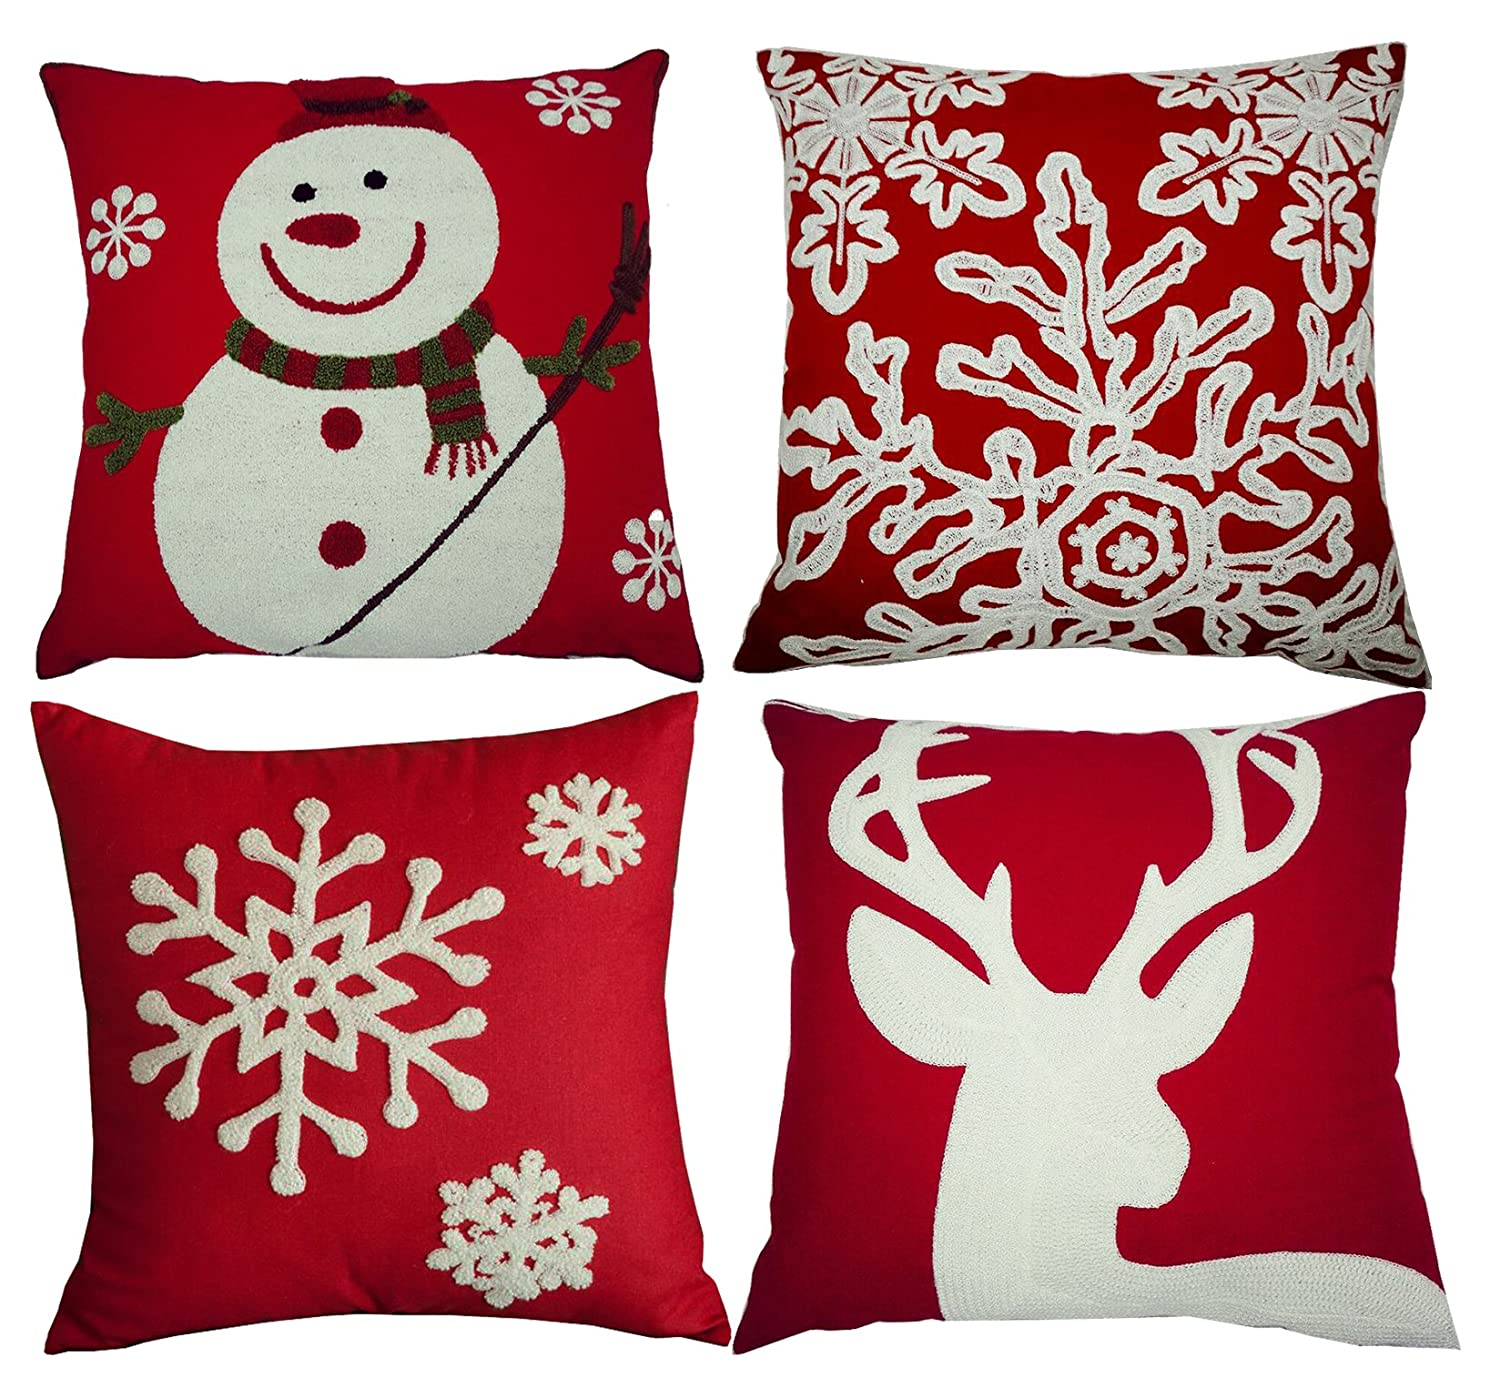 BLUETTEK Red Embroidery Christmas Pillow Covers Set of 4, Snowman,Christmas Deer, Snowflake, Merry Christmas Decorative Throw Pillow Case Cushion Covers